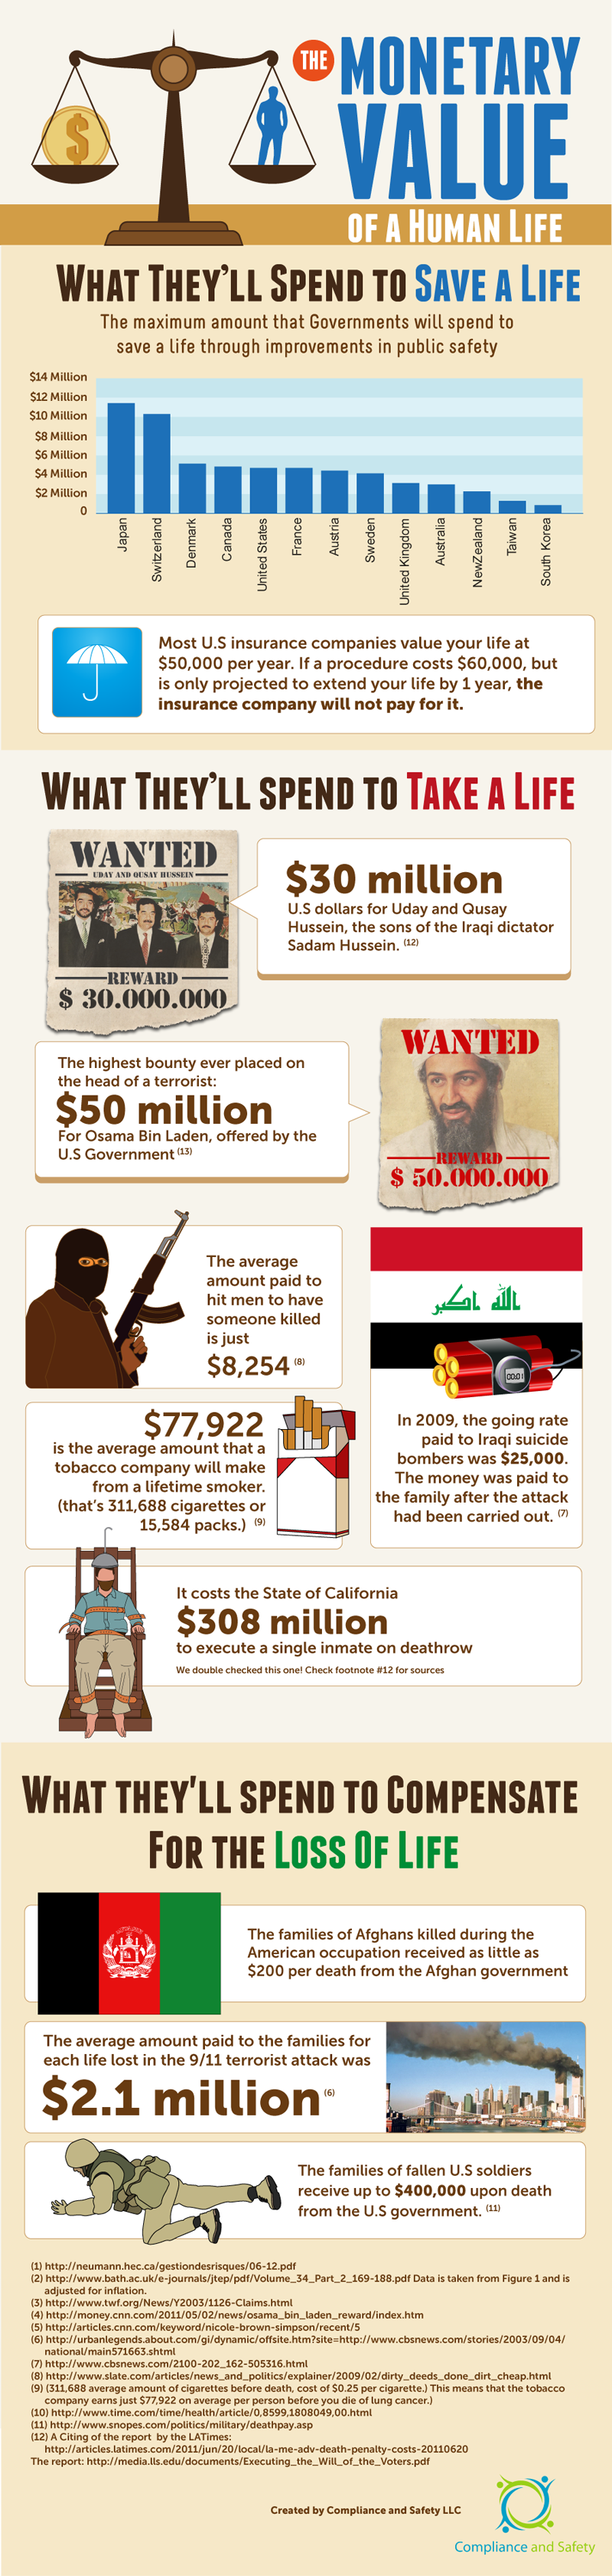 Infographic The Monetary Value Of A Human Life Infographic